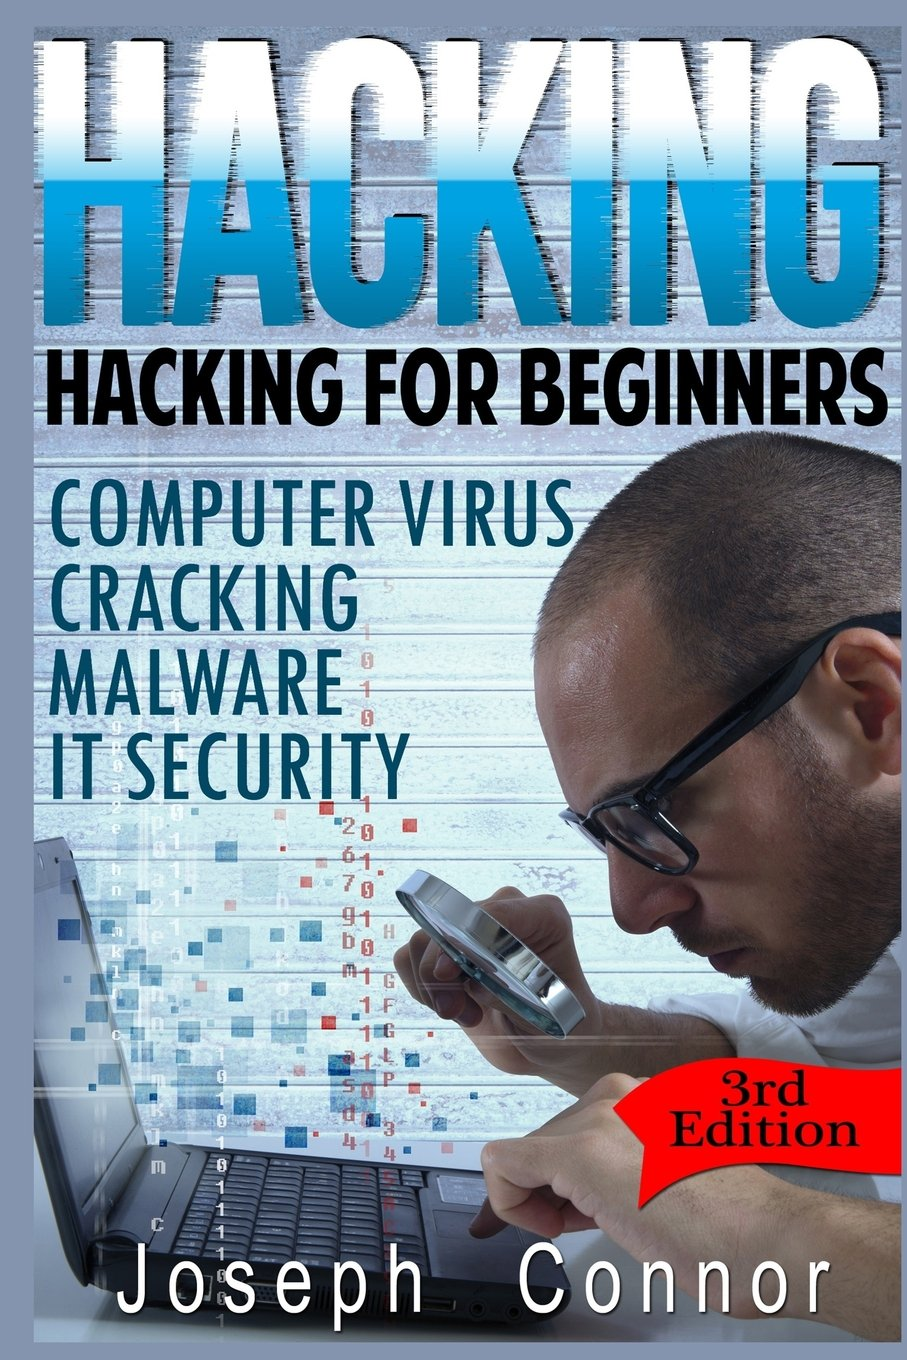 Hacking Ultimate Computer Cracking Security product image